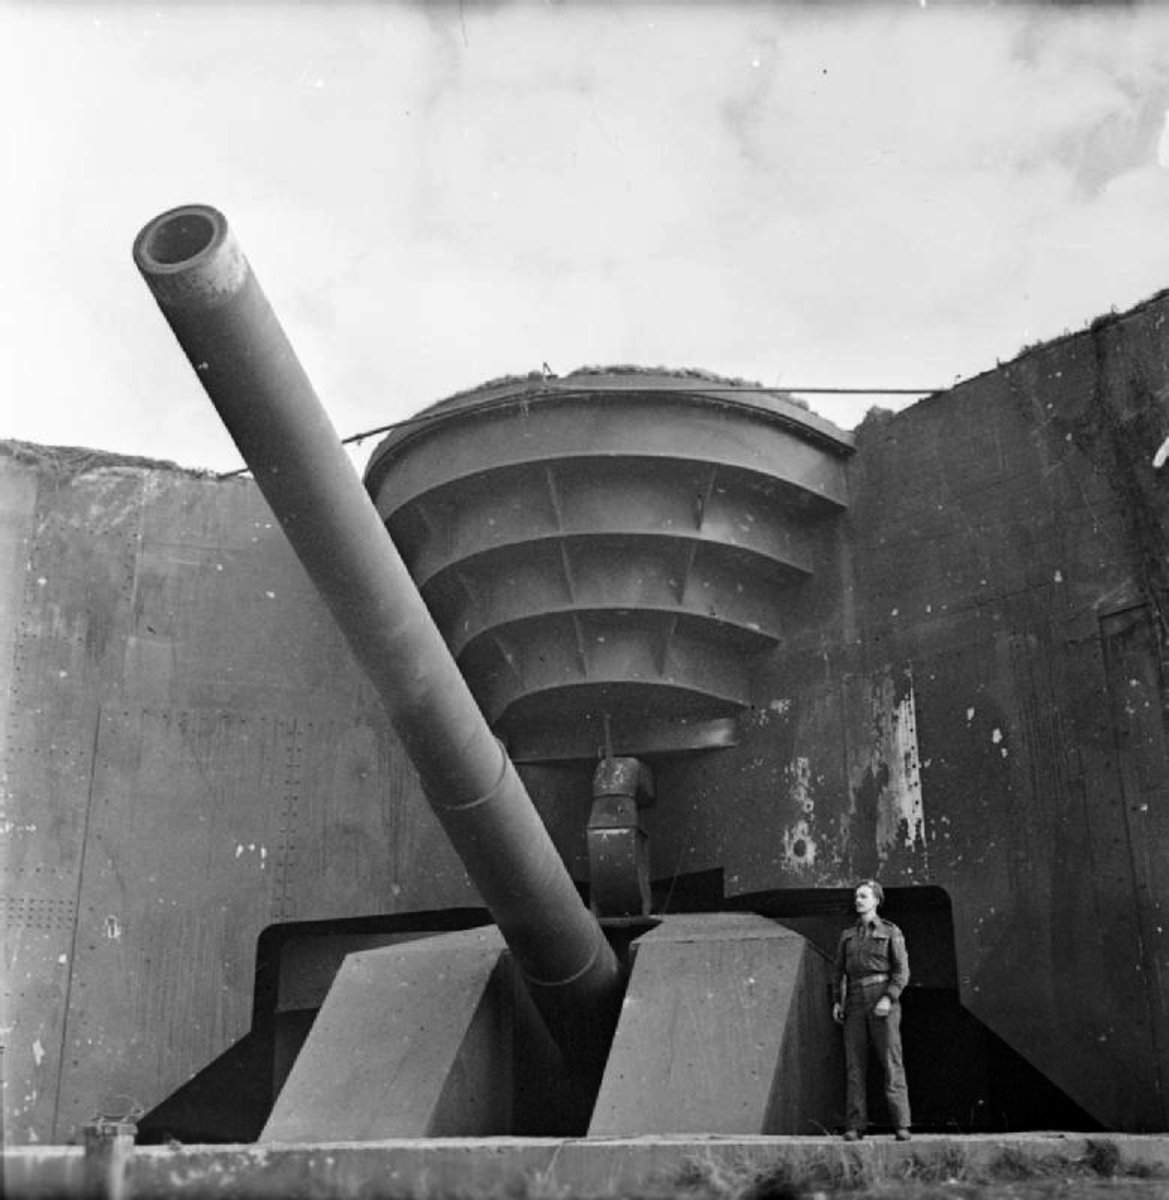 A British soldier poses next to the recently captured German 380 mm gun Todt Battery at Cap Gris Nez soon after D-Day landings.